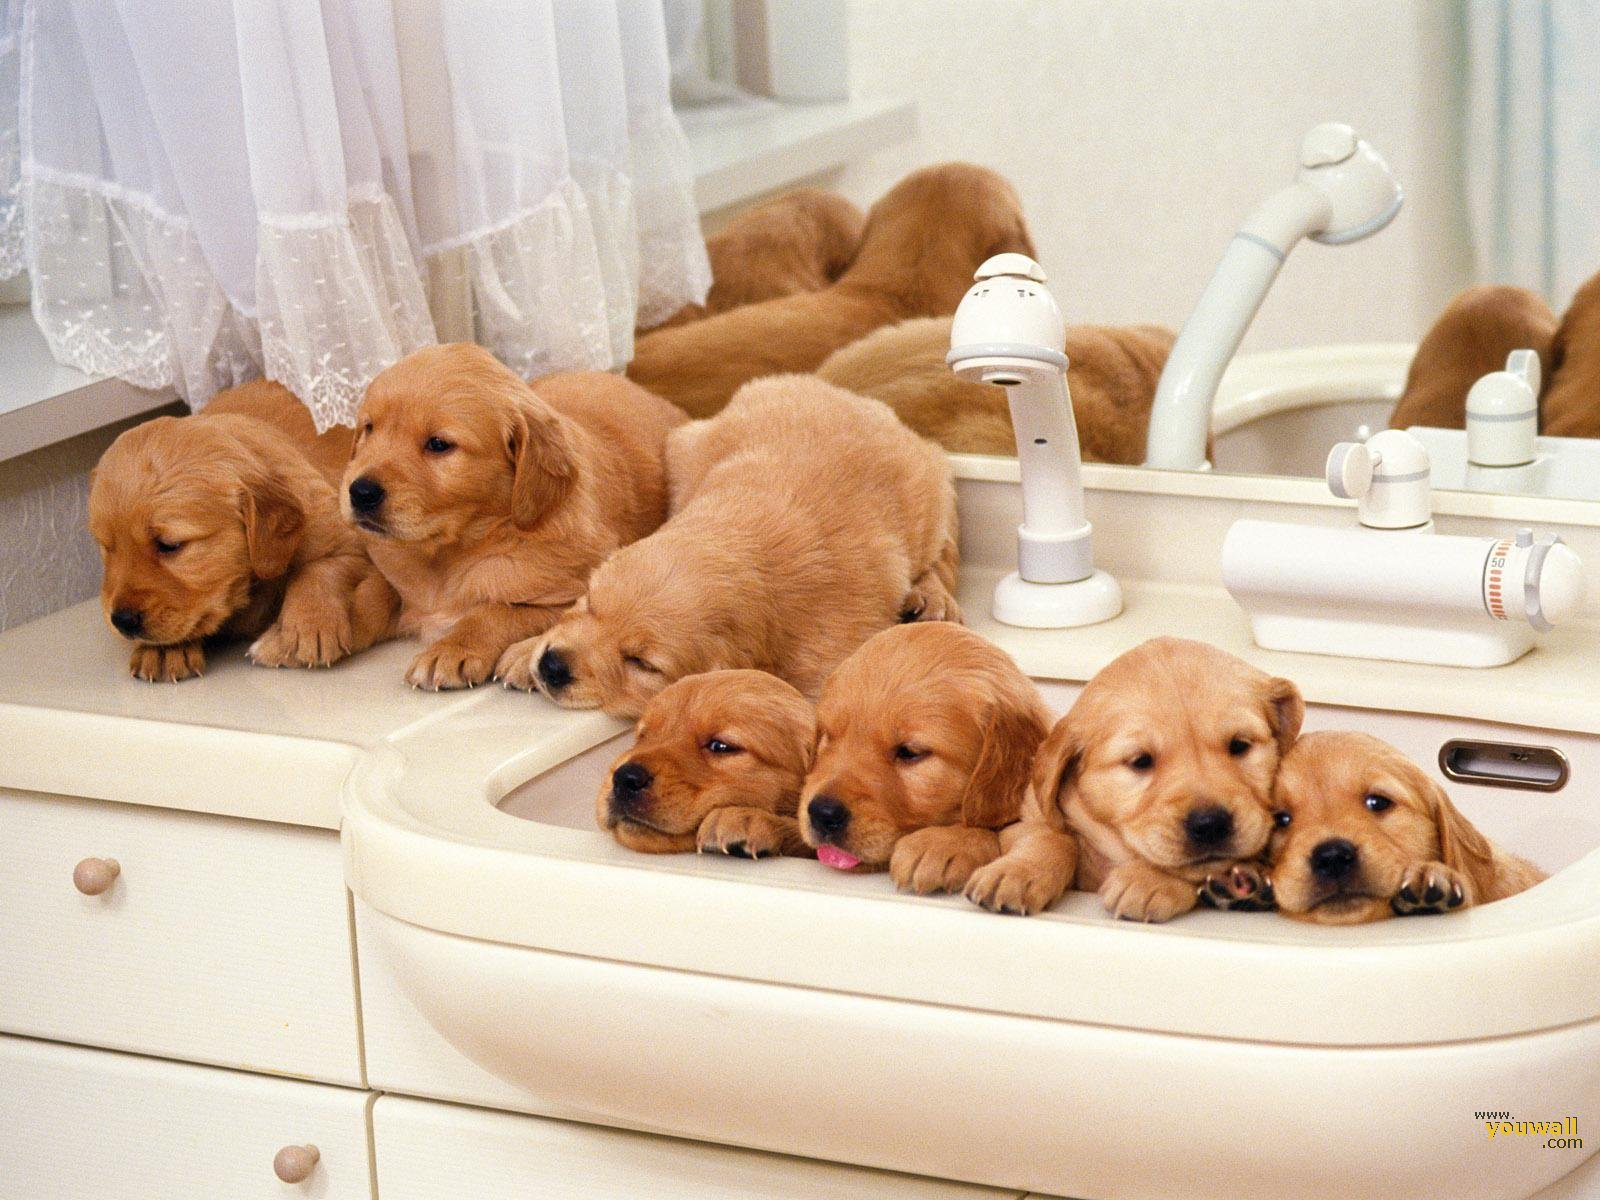 HD WALLPAPERS: Puppy Dog HD Wallpapers Free